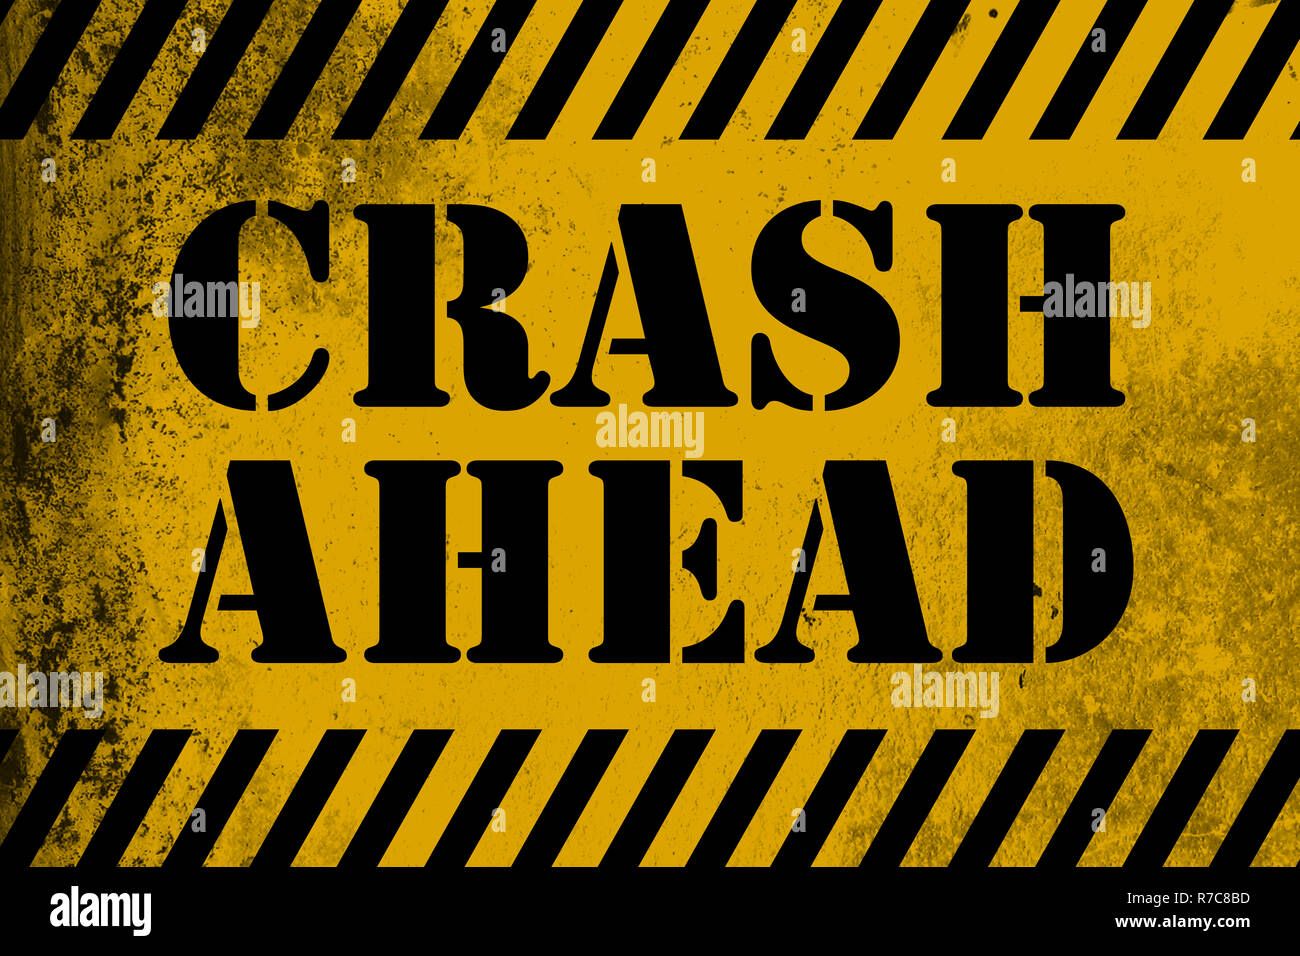 Crash Ahead sign yellow with stripes - Stock Image